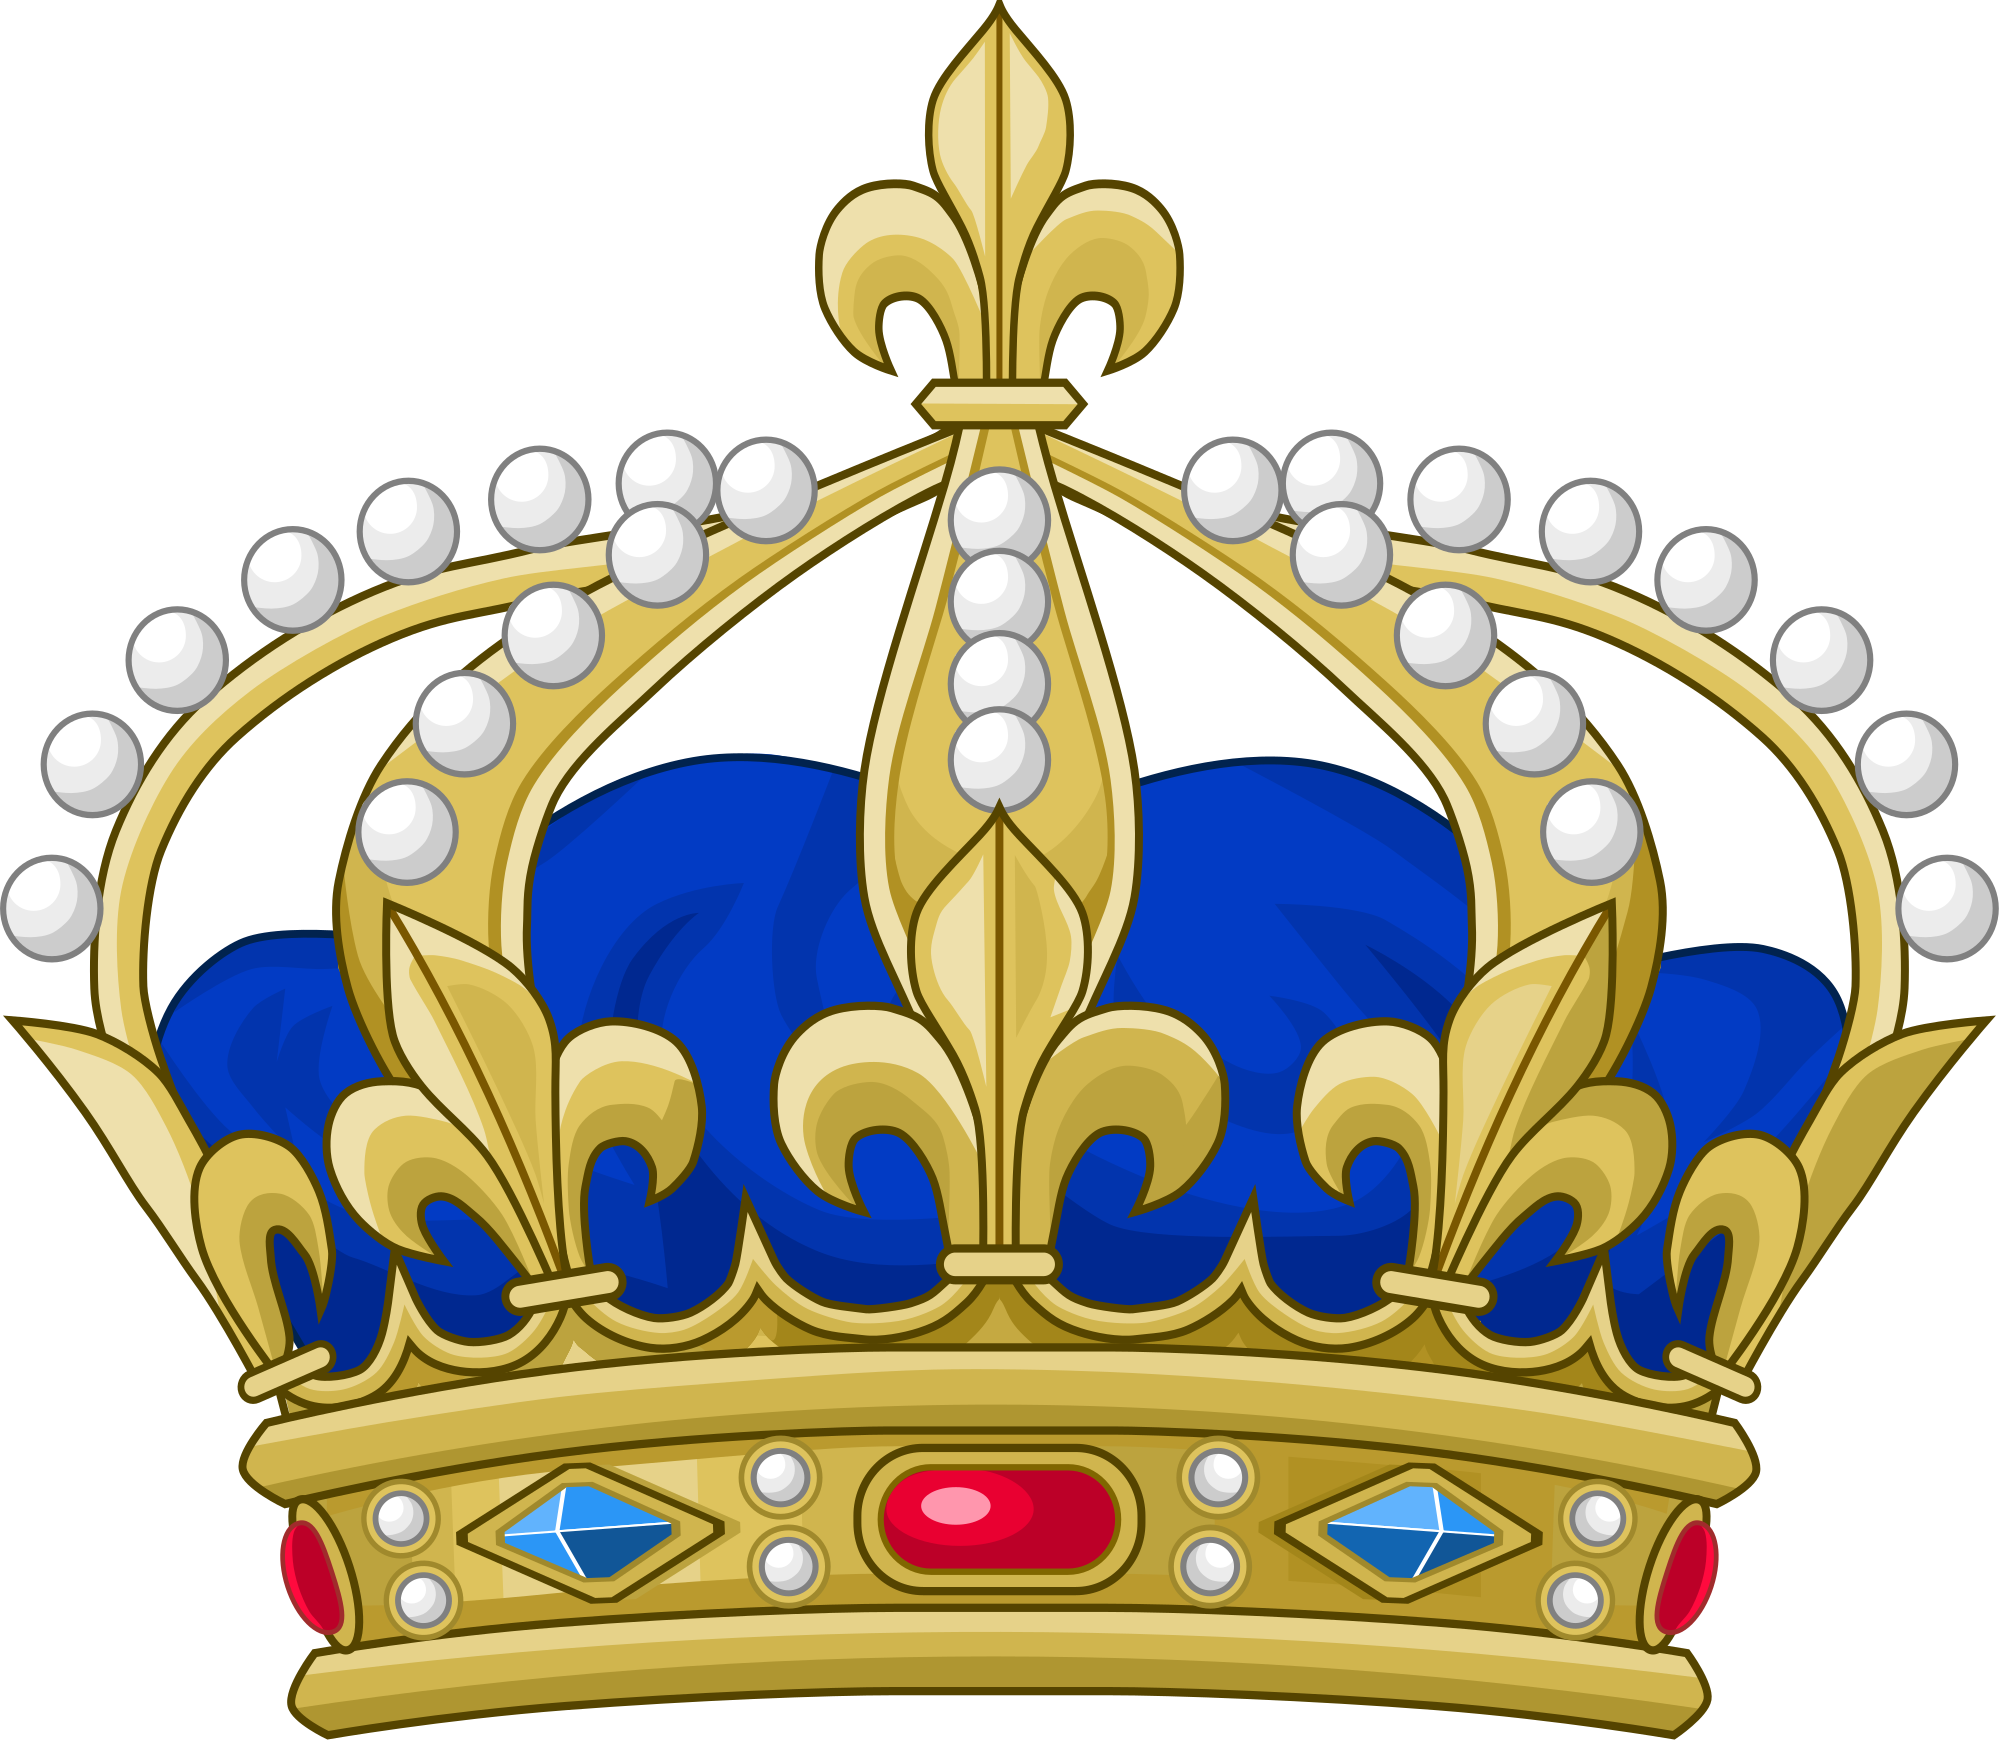 French crown clipart graphic freeuse library File:Royal Crown of France.svg - Wikimedia Commons graphic freeuse library